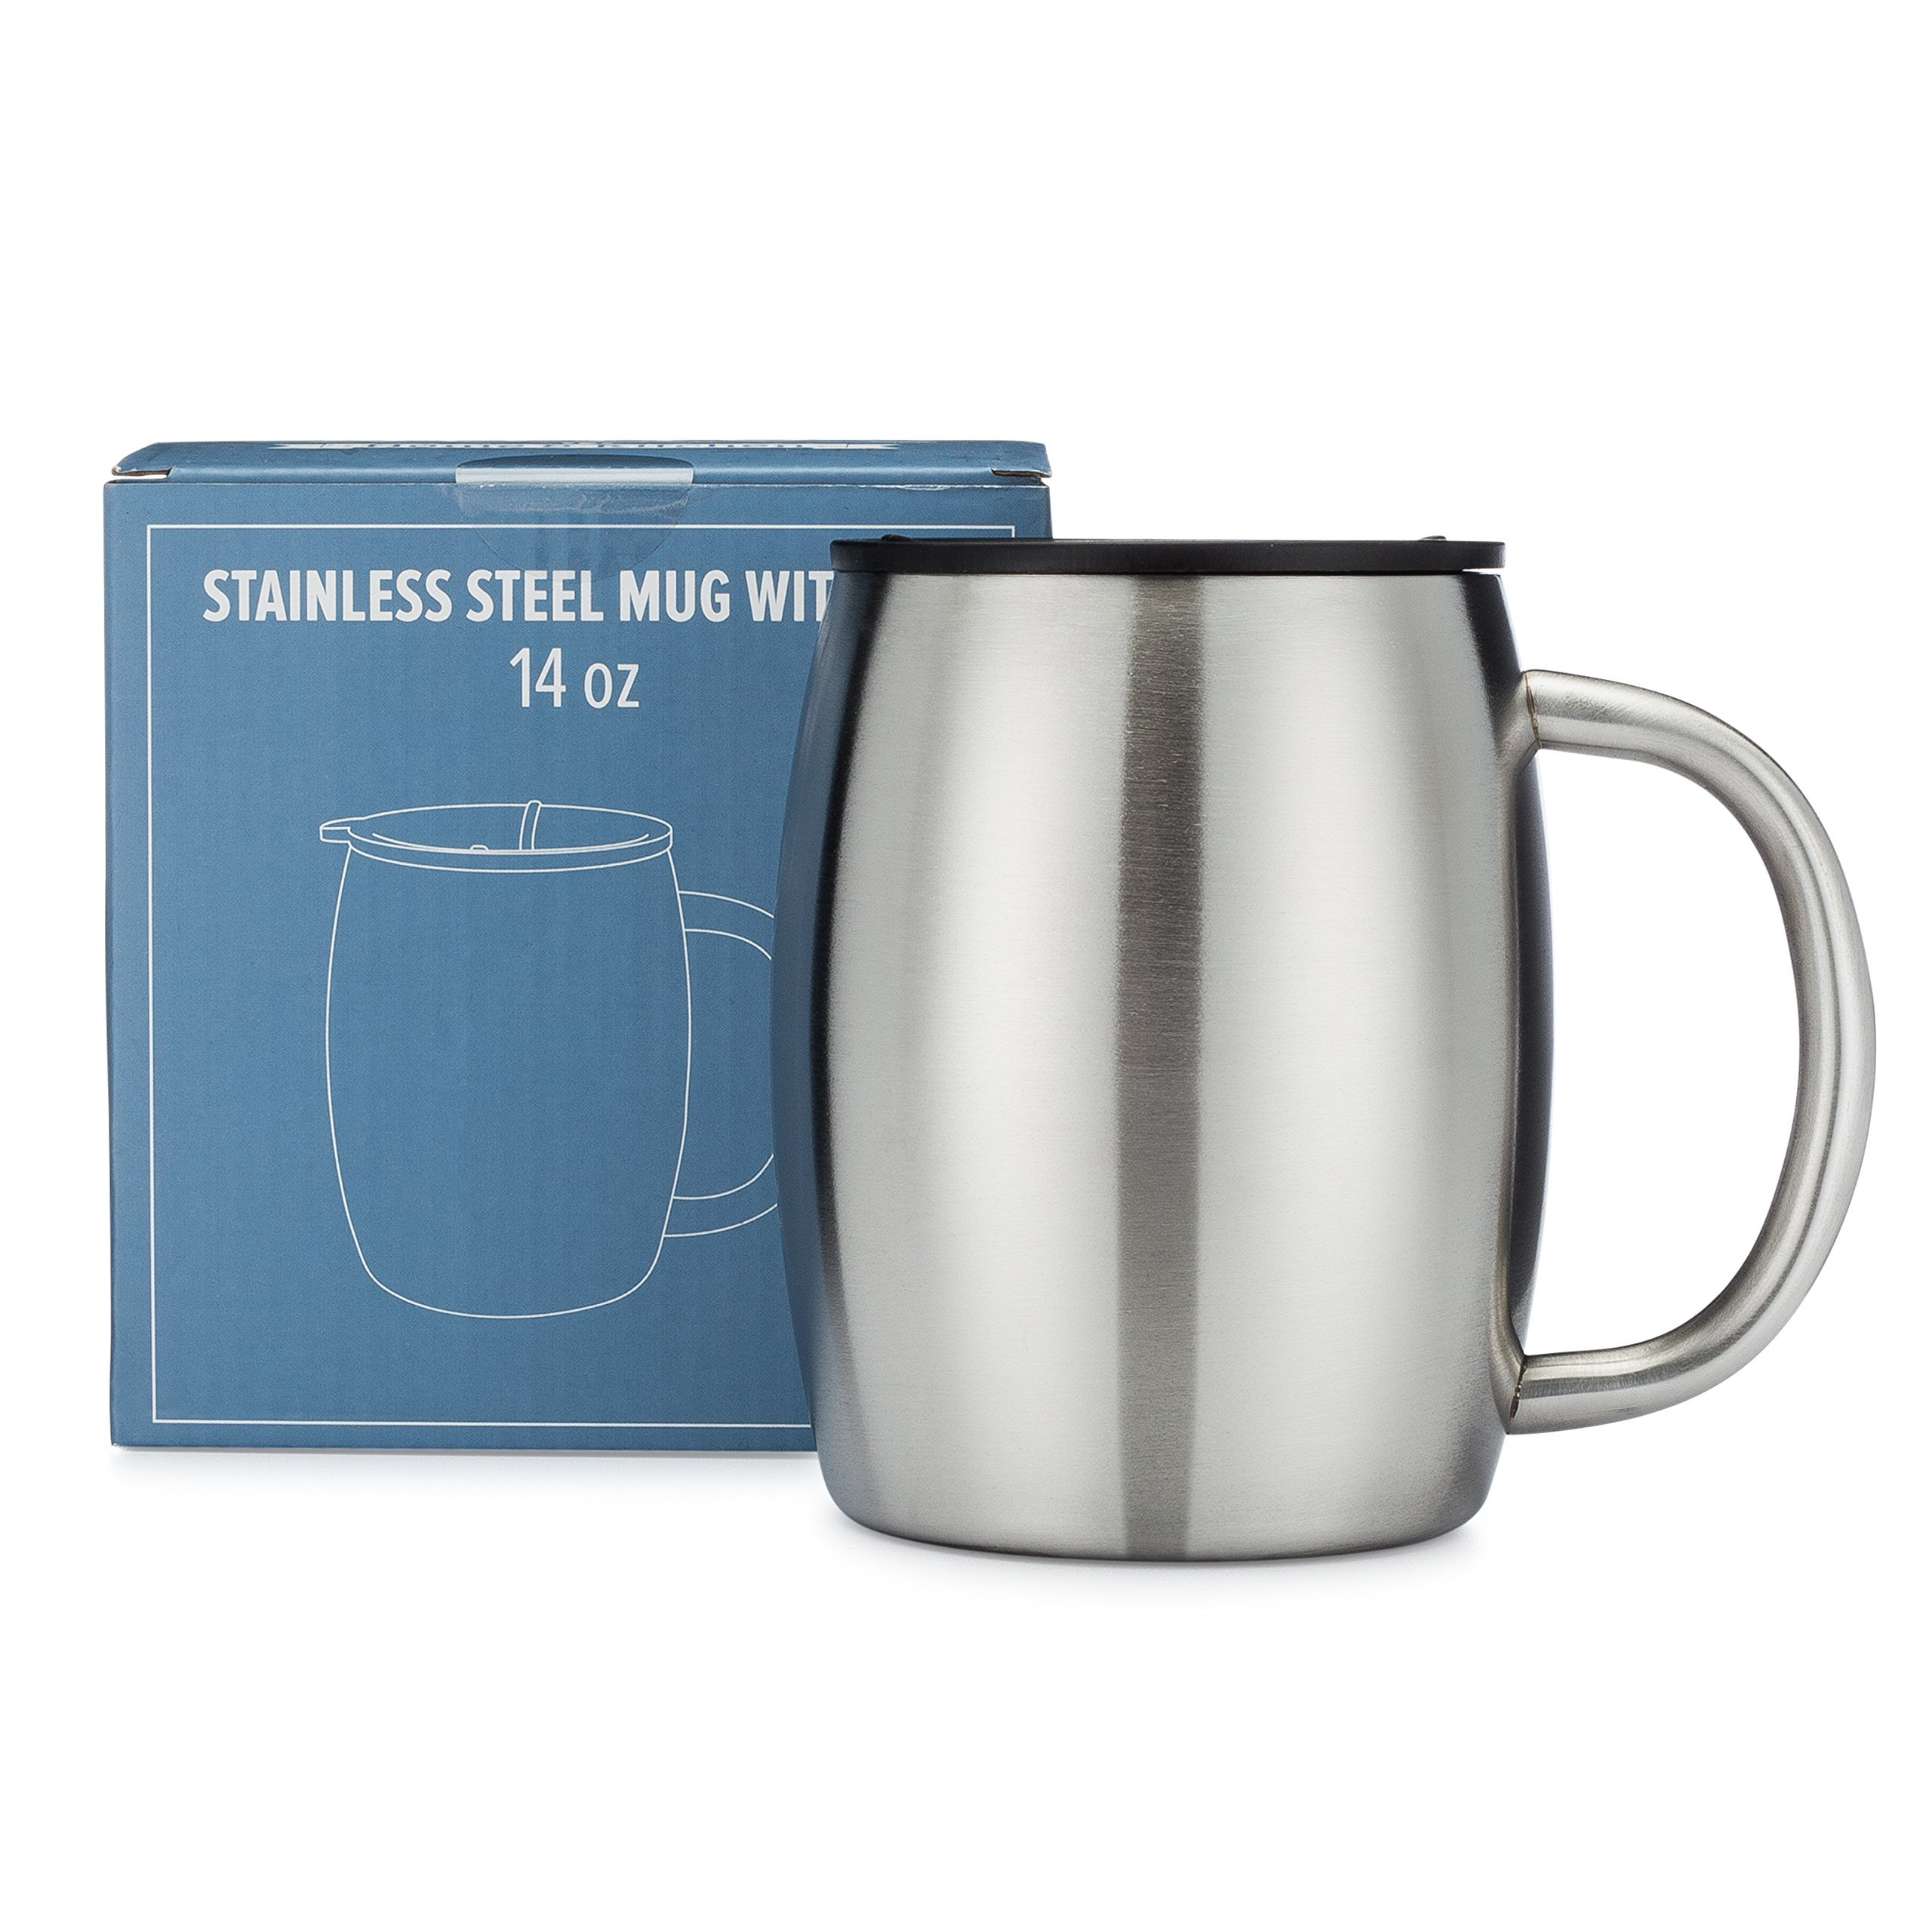 Stainless Steel Coffee Mug with Lid - 14 Oz Double Walled Insulated Coffee Mug - By Avito - Best Value - BPA Free Healthy Choice - Shatterproof and Spill Resistant by Avito (Image #1)